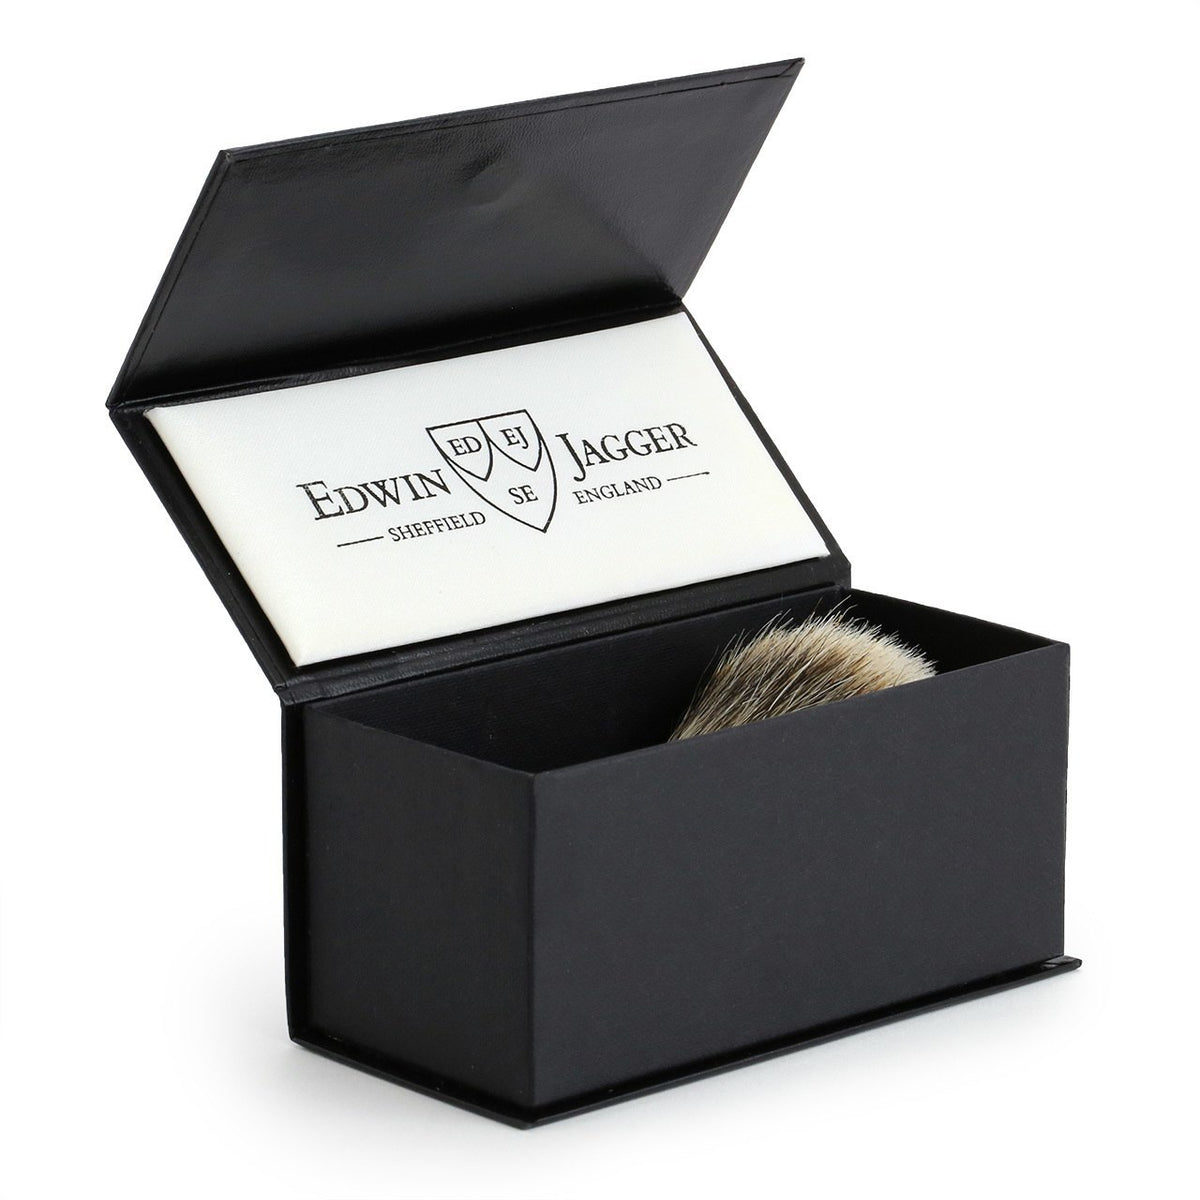 Edwin Jagger Chatsworth Silver Tip Badger Shaving Brush - Ivory